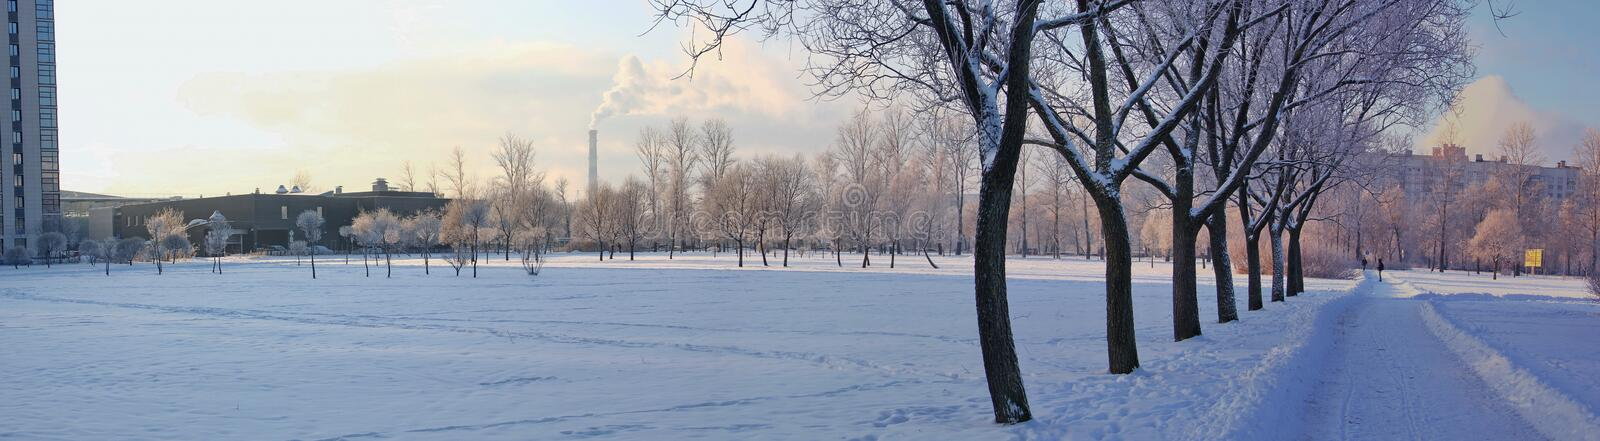 Panoramic views of city park in winter. The avenue of trees in the foreground, away from white frost, the trees, the tower with the steam, homes stock image